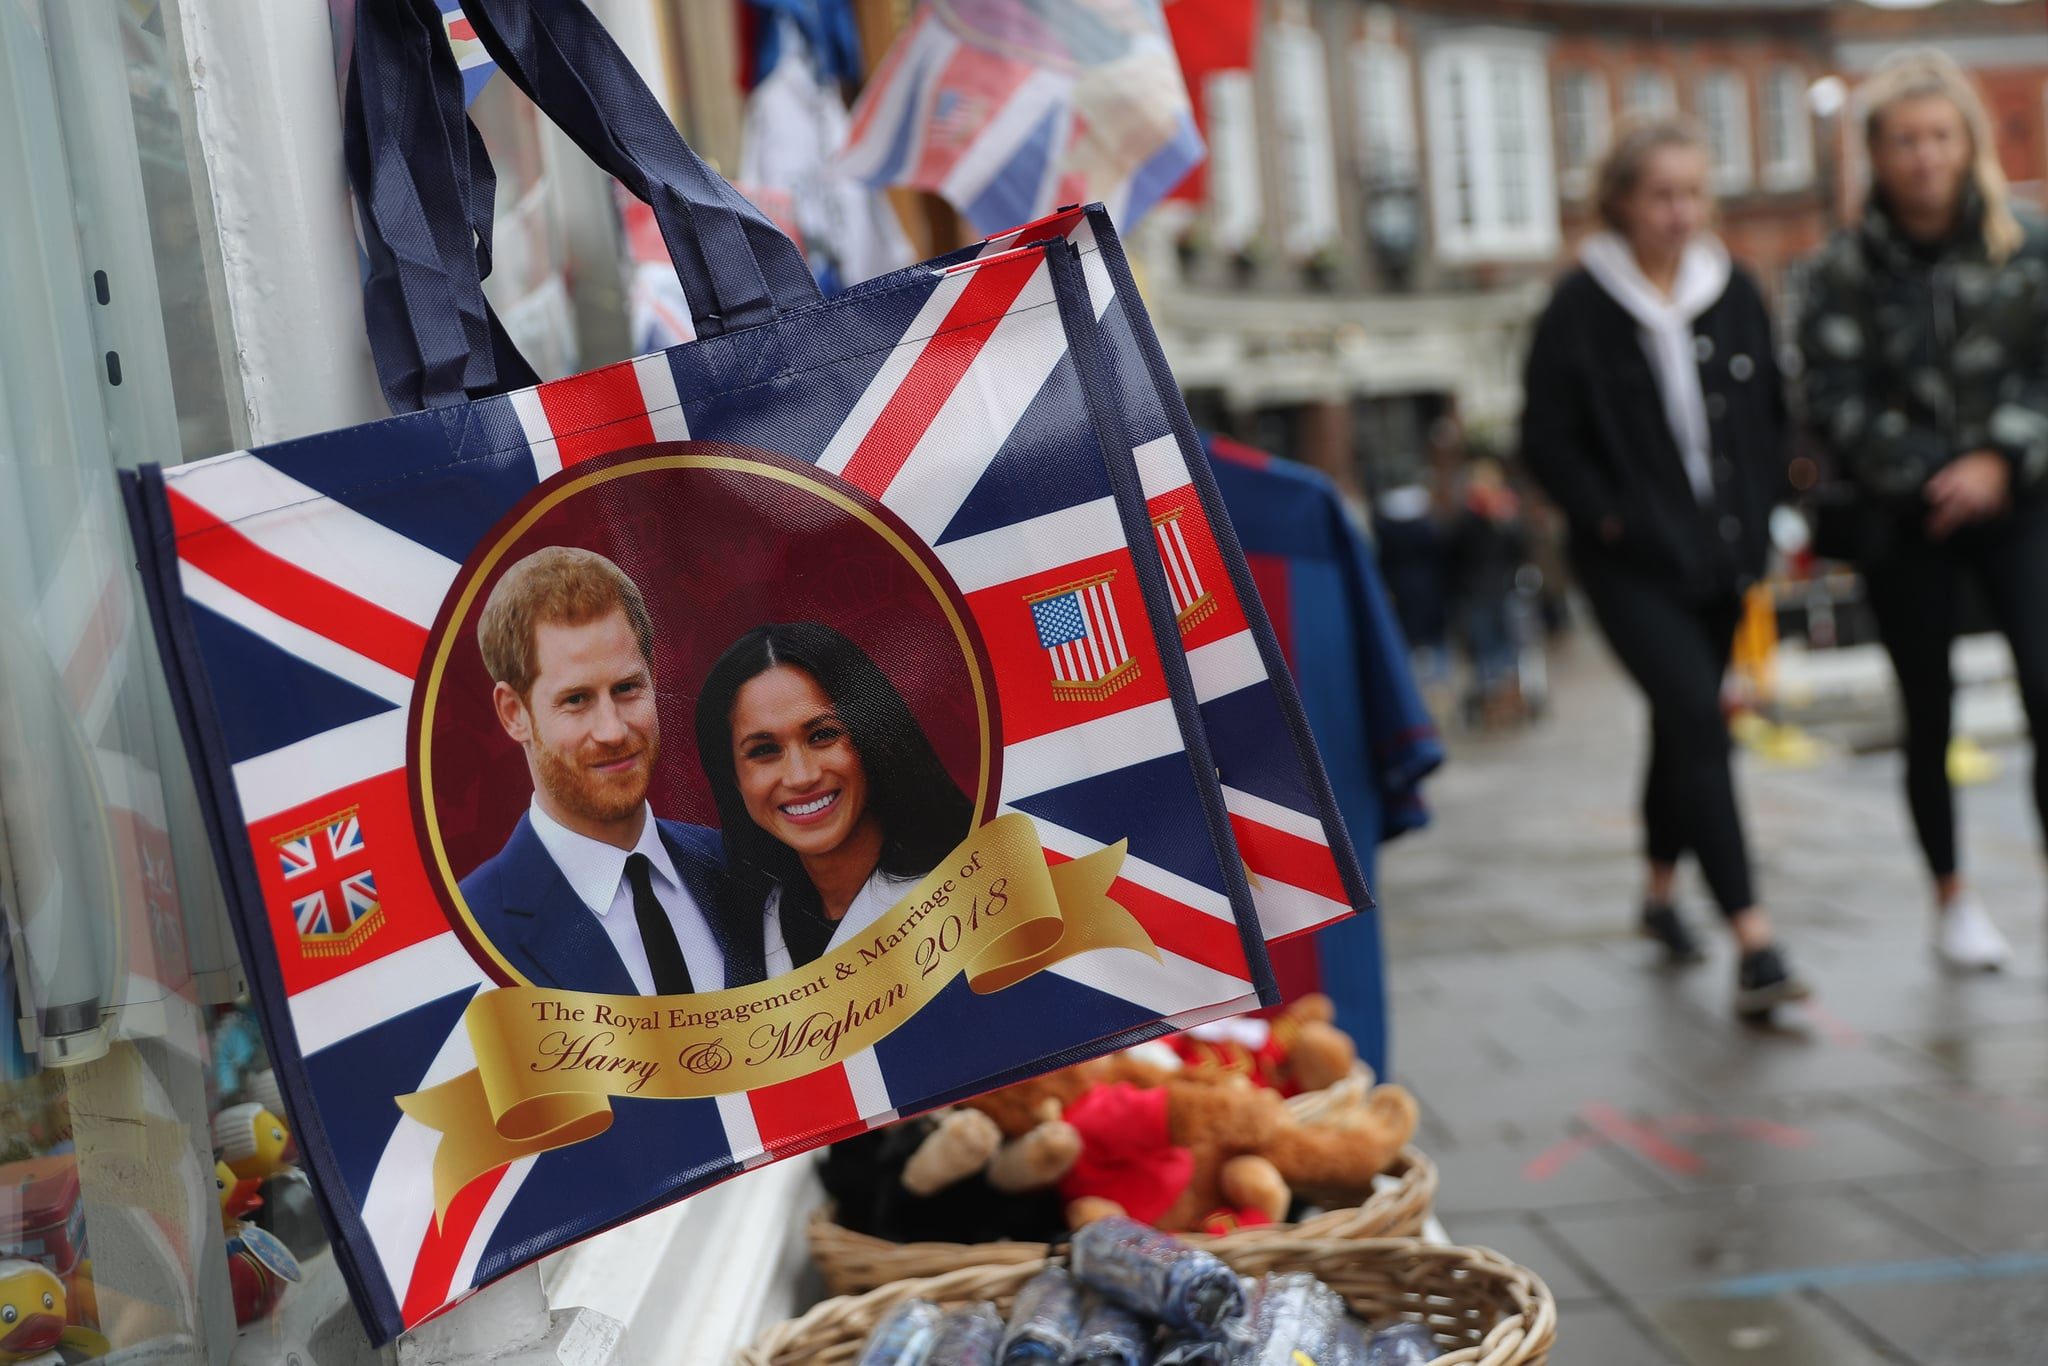 Memorabilia celebrating the engagement of Britain's Prince Harry to fiancee US actress Meghan Markle are pictured for sale in a gift shop in Windsor, west of London on March 28, 2018.Britain's Prince Harry and US actress Meghan Markle will marry on May 19 at St George's Chapel in Windsor Castle. / AFP PHOTO / Daniel LEAL-OLIVAS        (Photo credit should read DANIEL LEAL-OLIVAS/AFP/Getty Images)